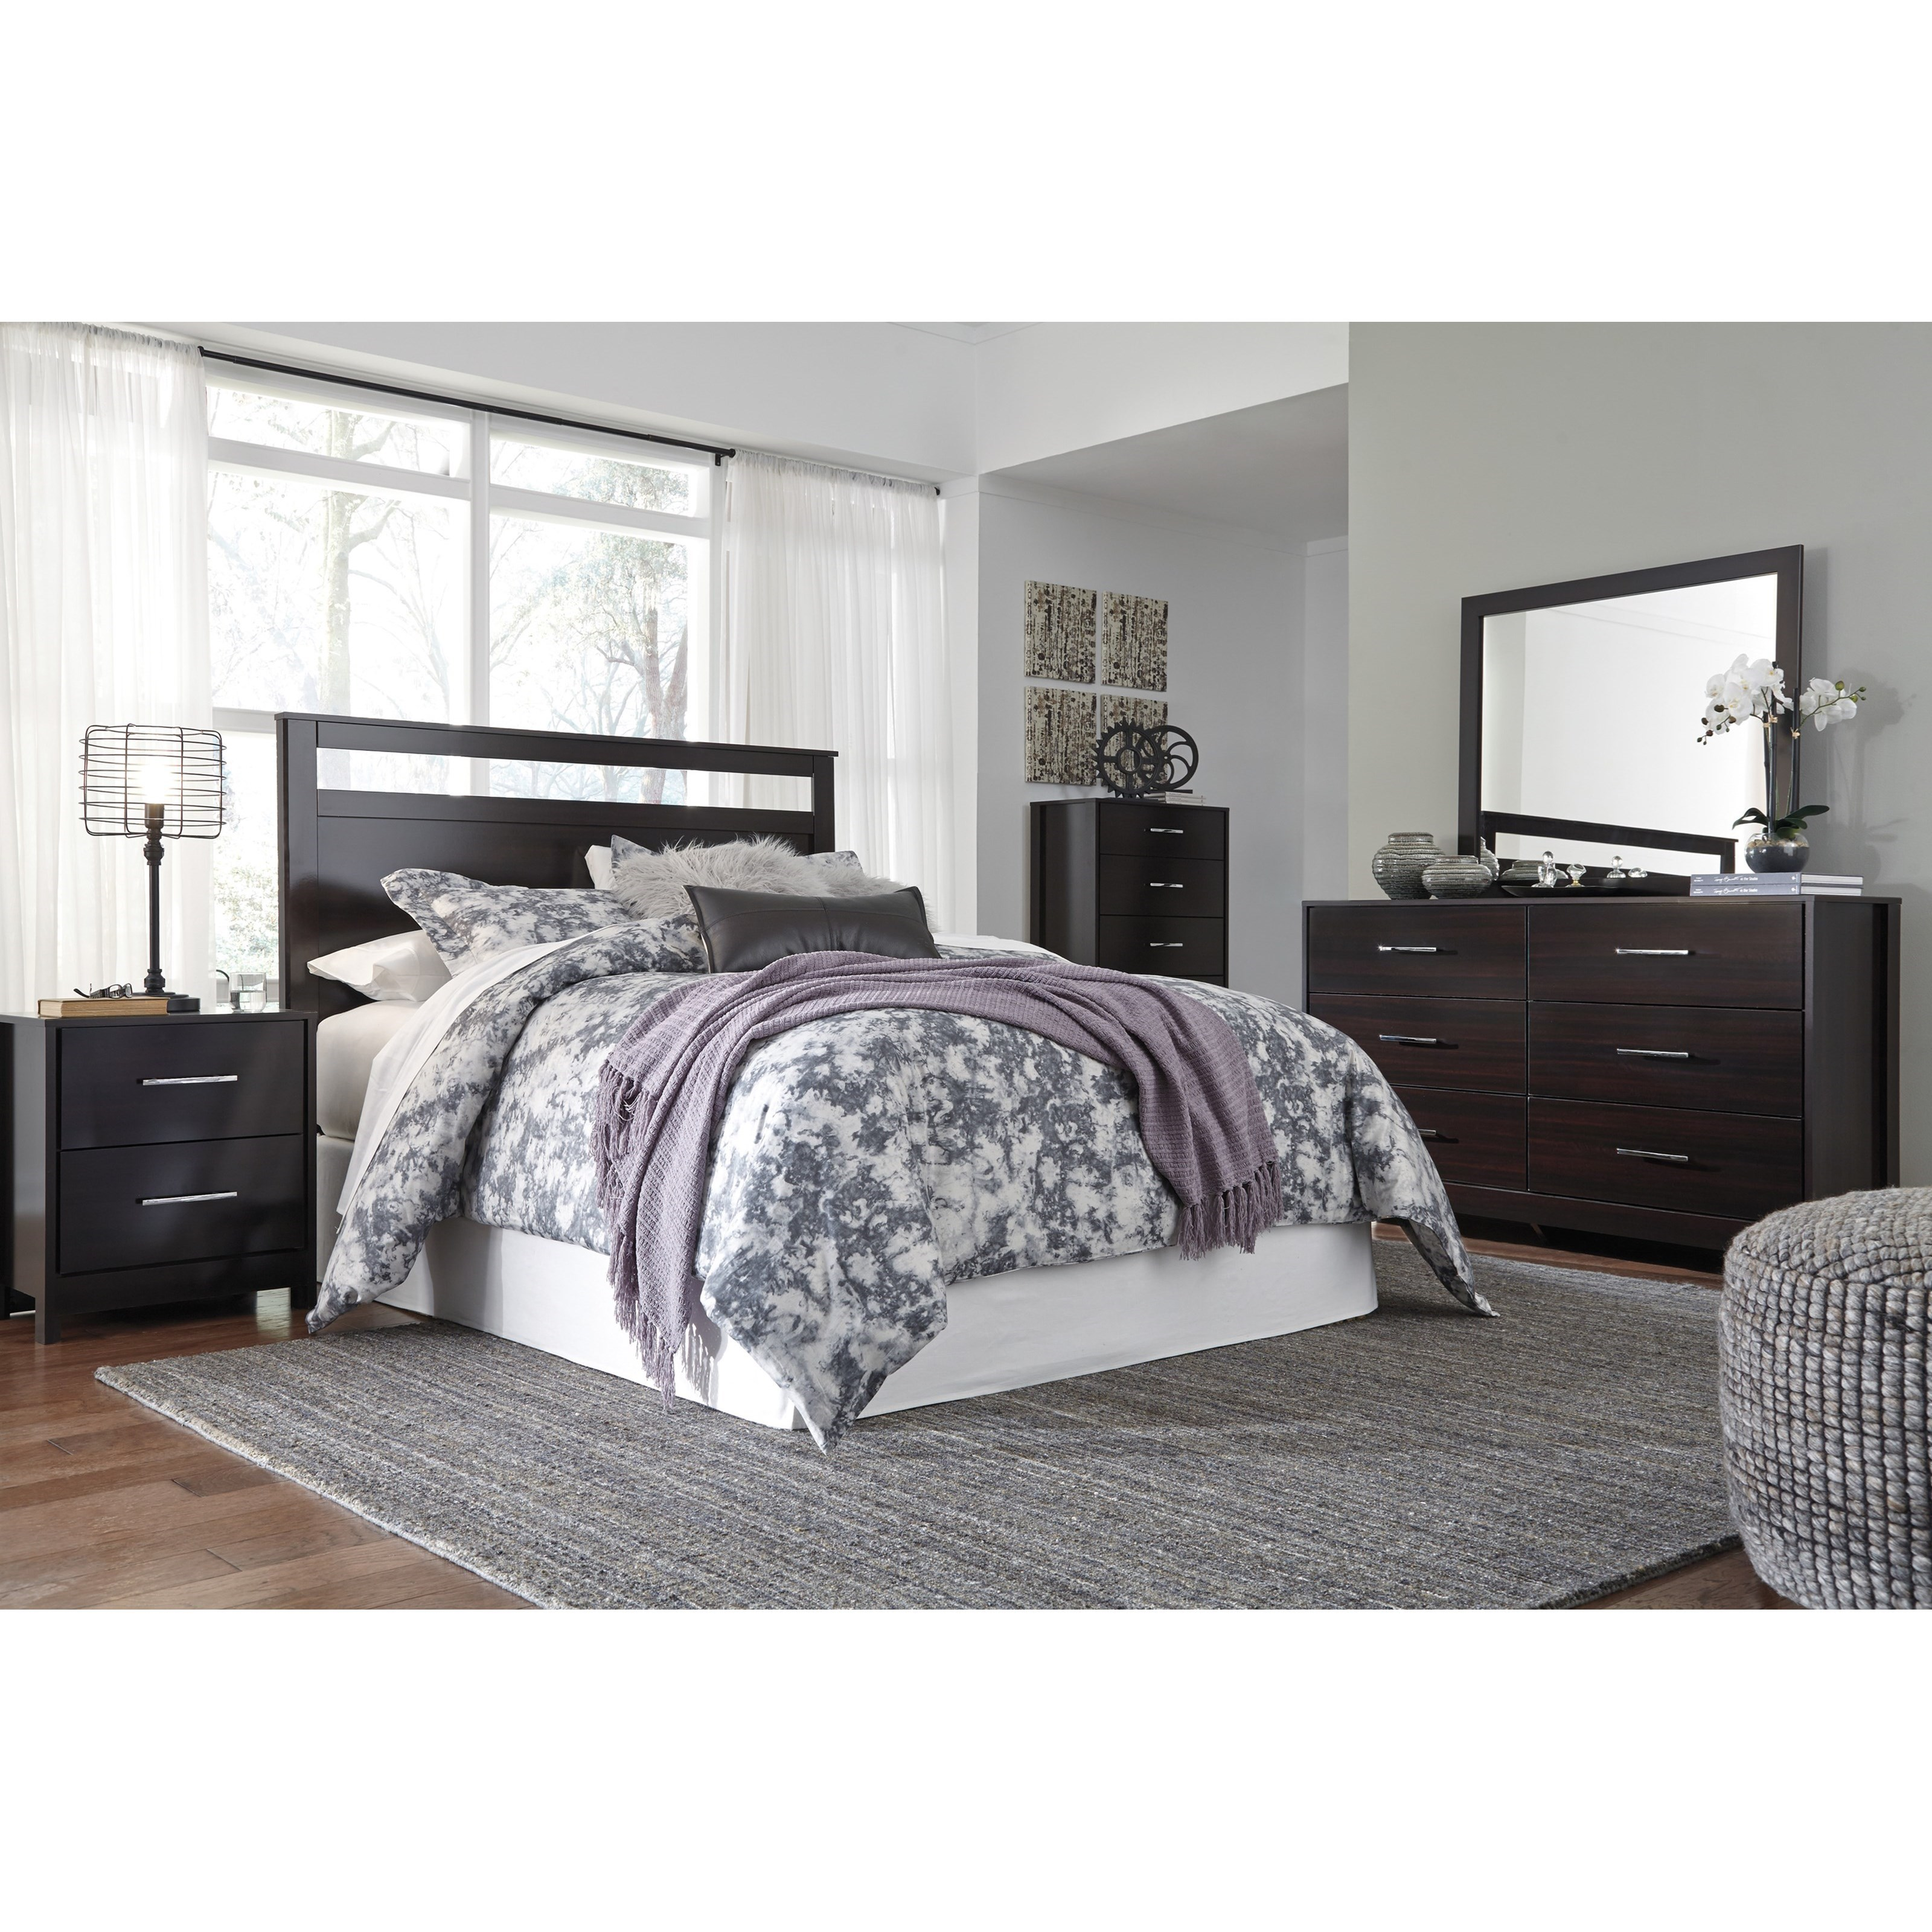 Signature Design by Ashley Furniture Agella Queen/Full Bedroom Group - Item Number: B072 Q Bedroom Group 2